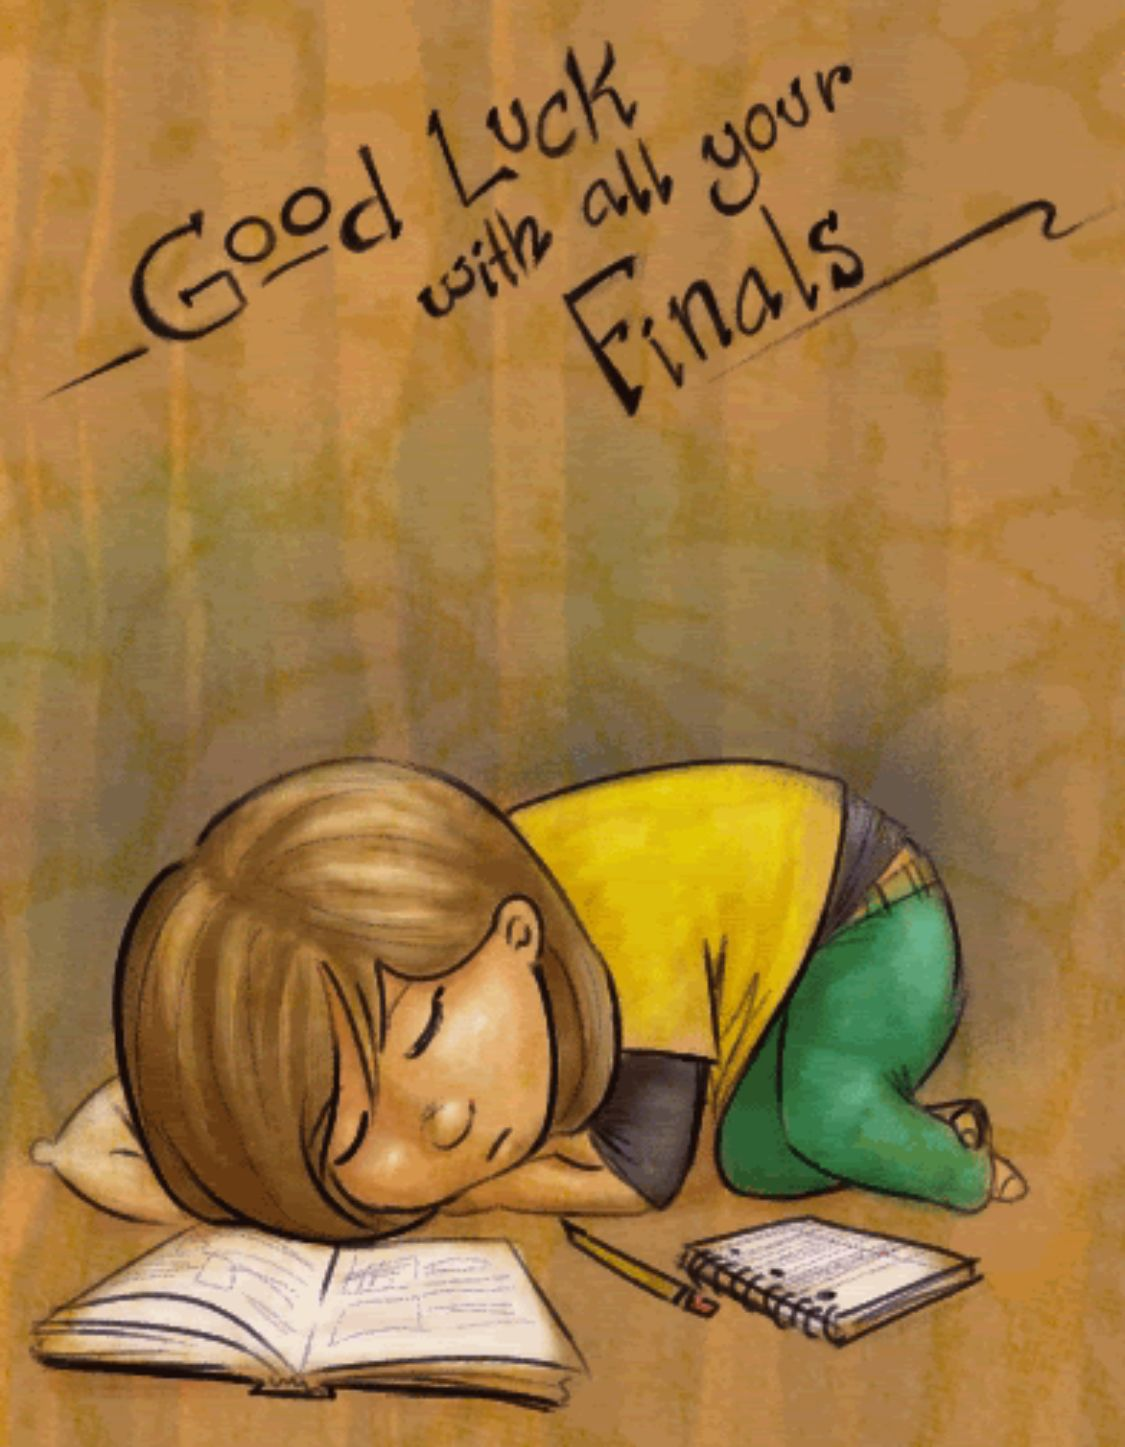 Funny Good Luck Messages For Exams : funny, messages, exams, Finals, Quotes,, Wishes, Luck,